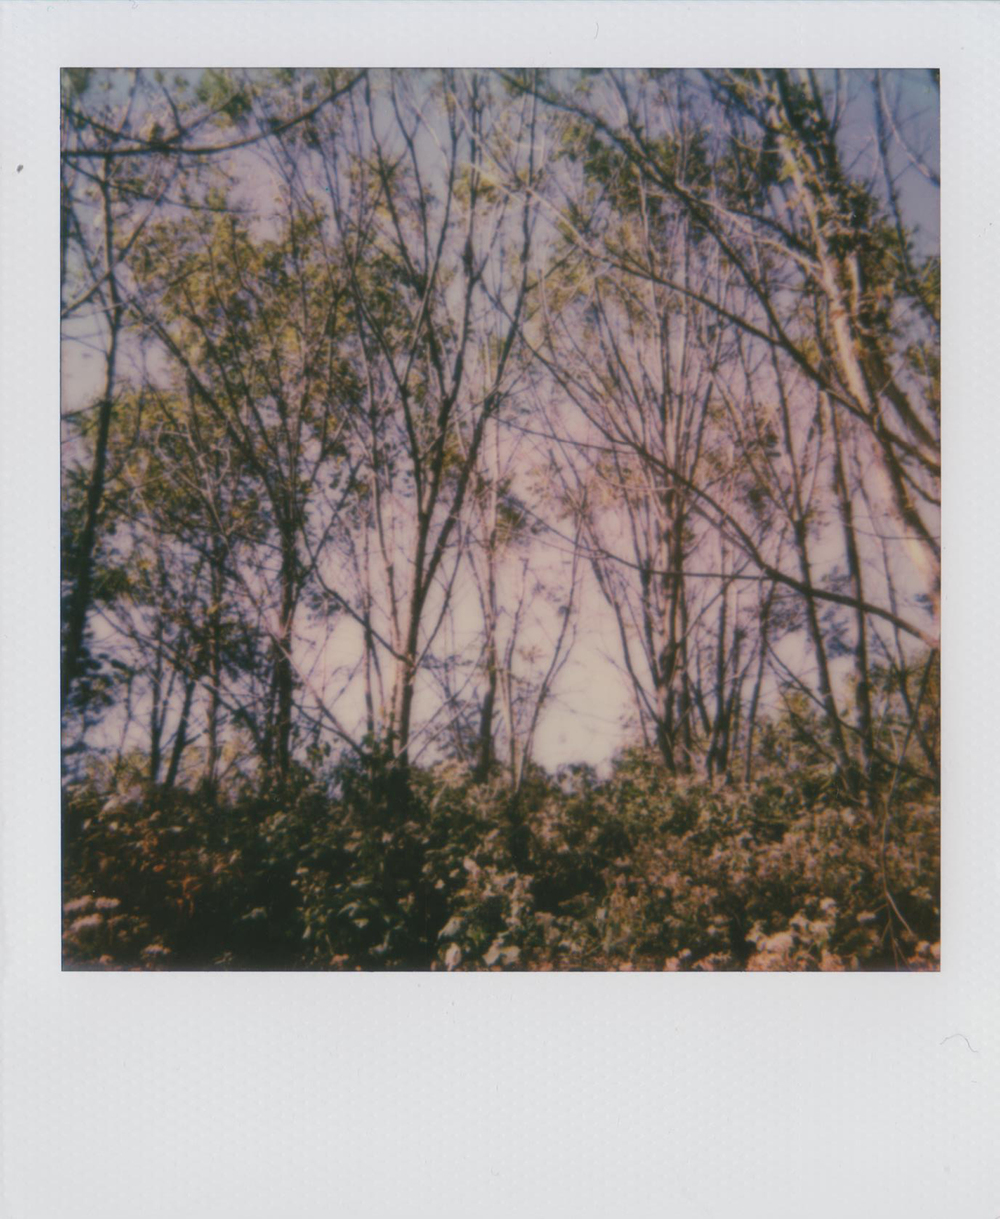 All images Polaroid Spirit 600 and Polaroid Spectra, Impossible Project film